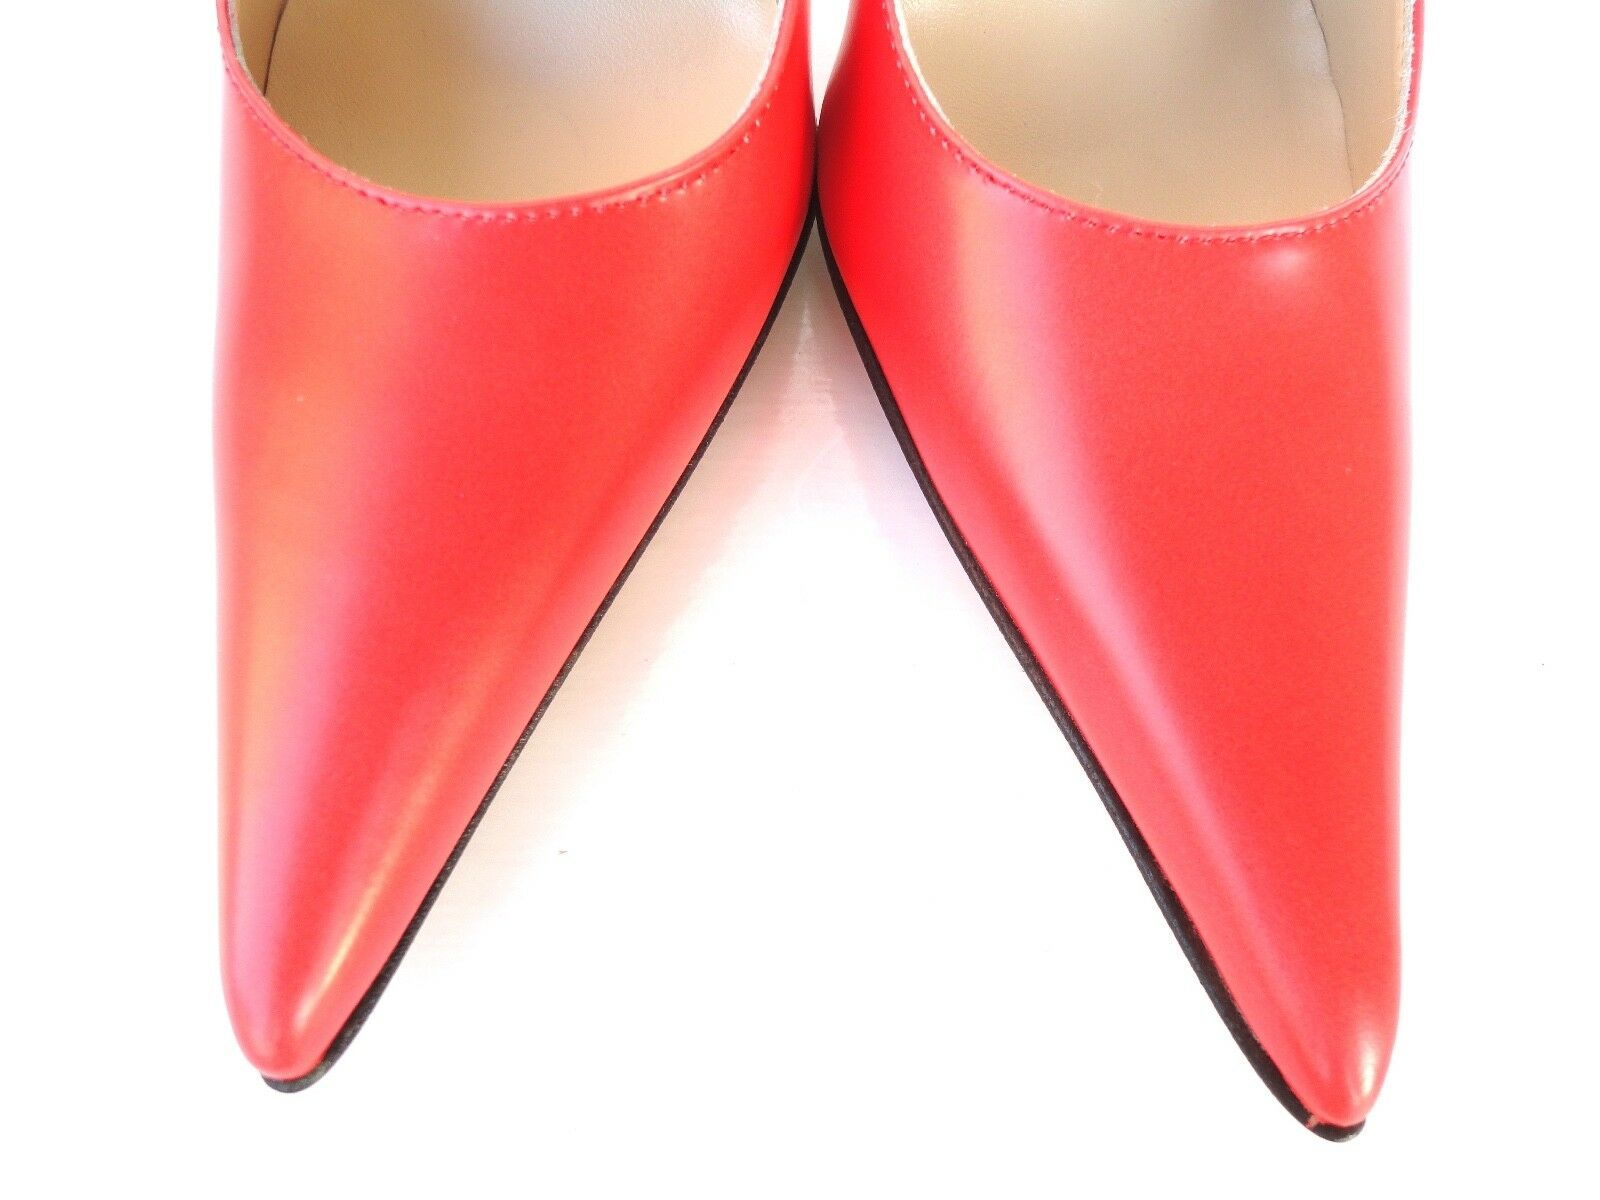 GIOHEL DECOLTE ITALY HIGH HEELS POINTY TOE PUMPS SCHUHE LEATHER DECOLTE GIOHEL ROT ROT ROSSO 38 7583ed